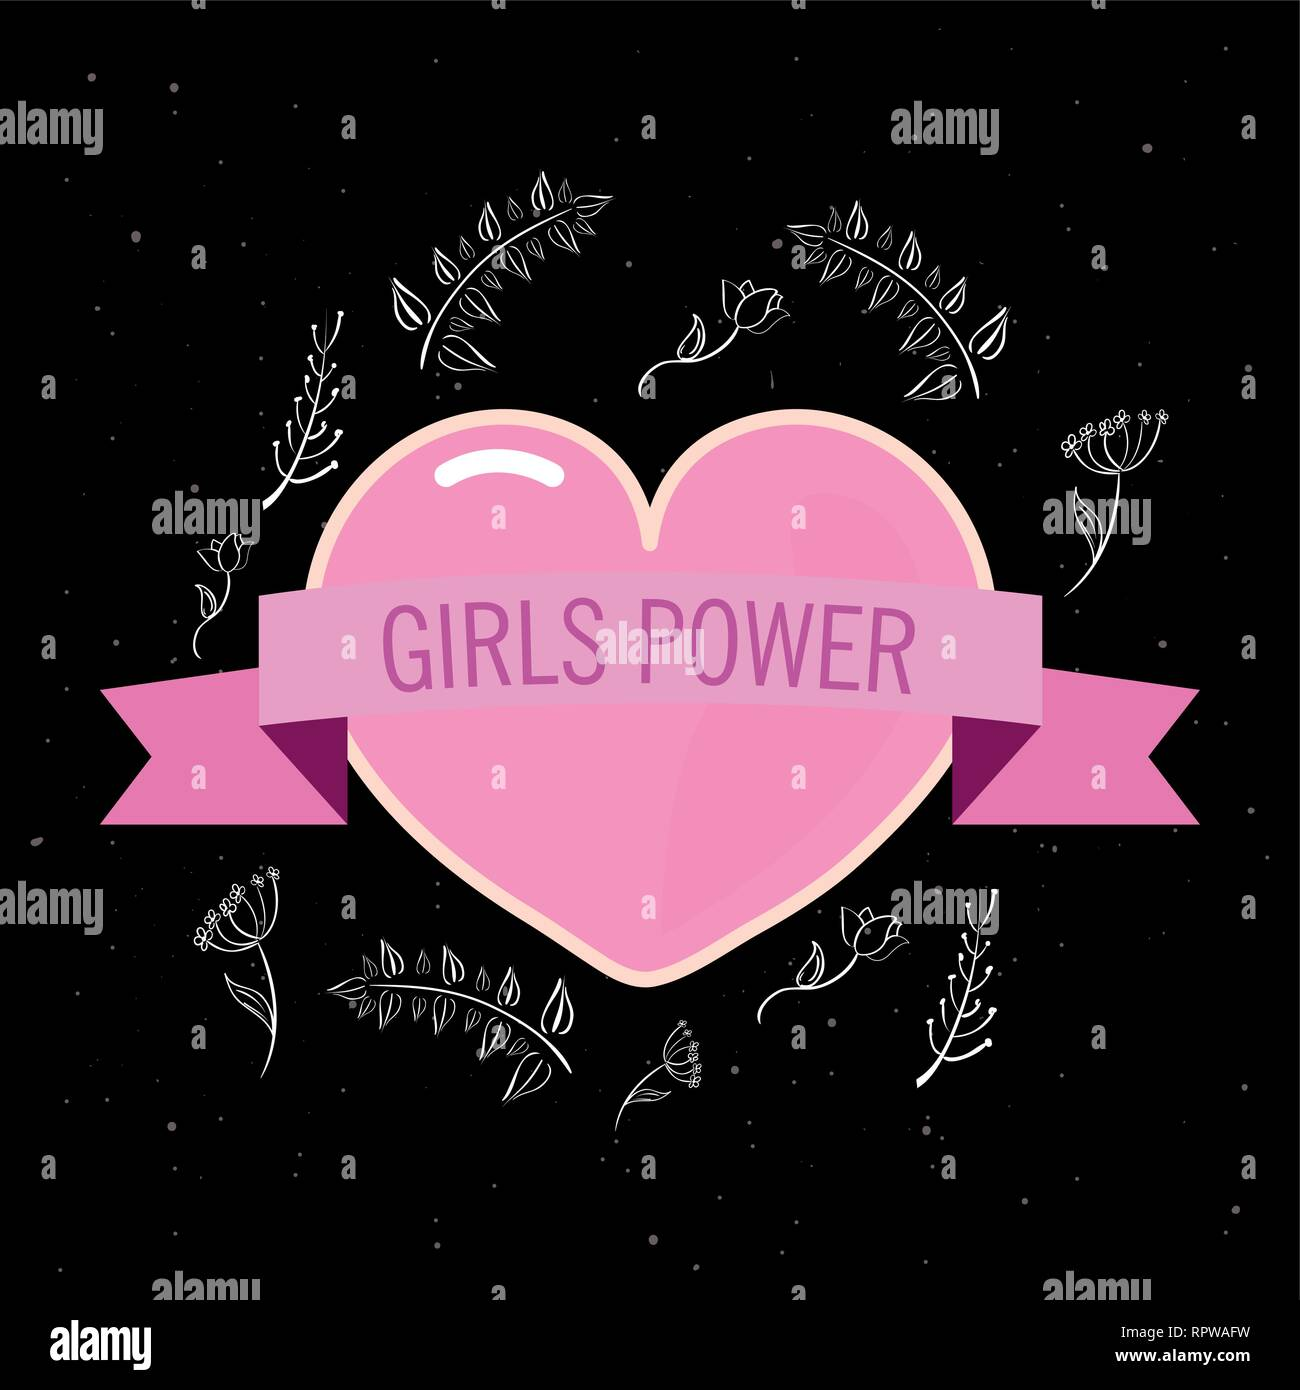 Pink Heart Floral Black Background Girls Power Vector Illustration Stock Vector Image Art Alamy